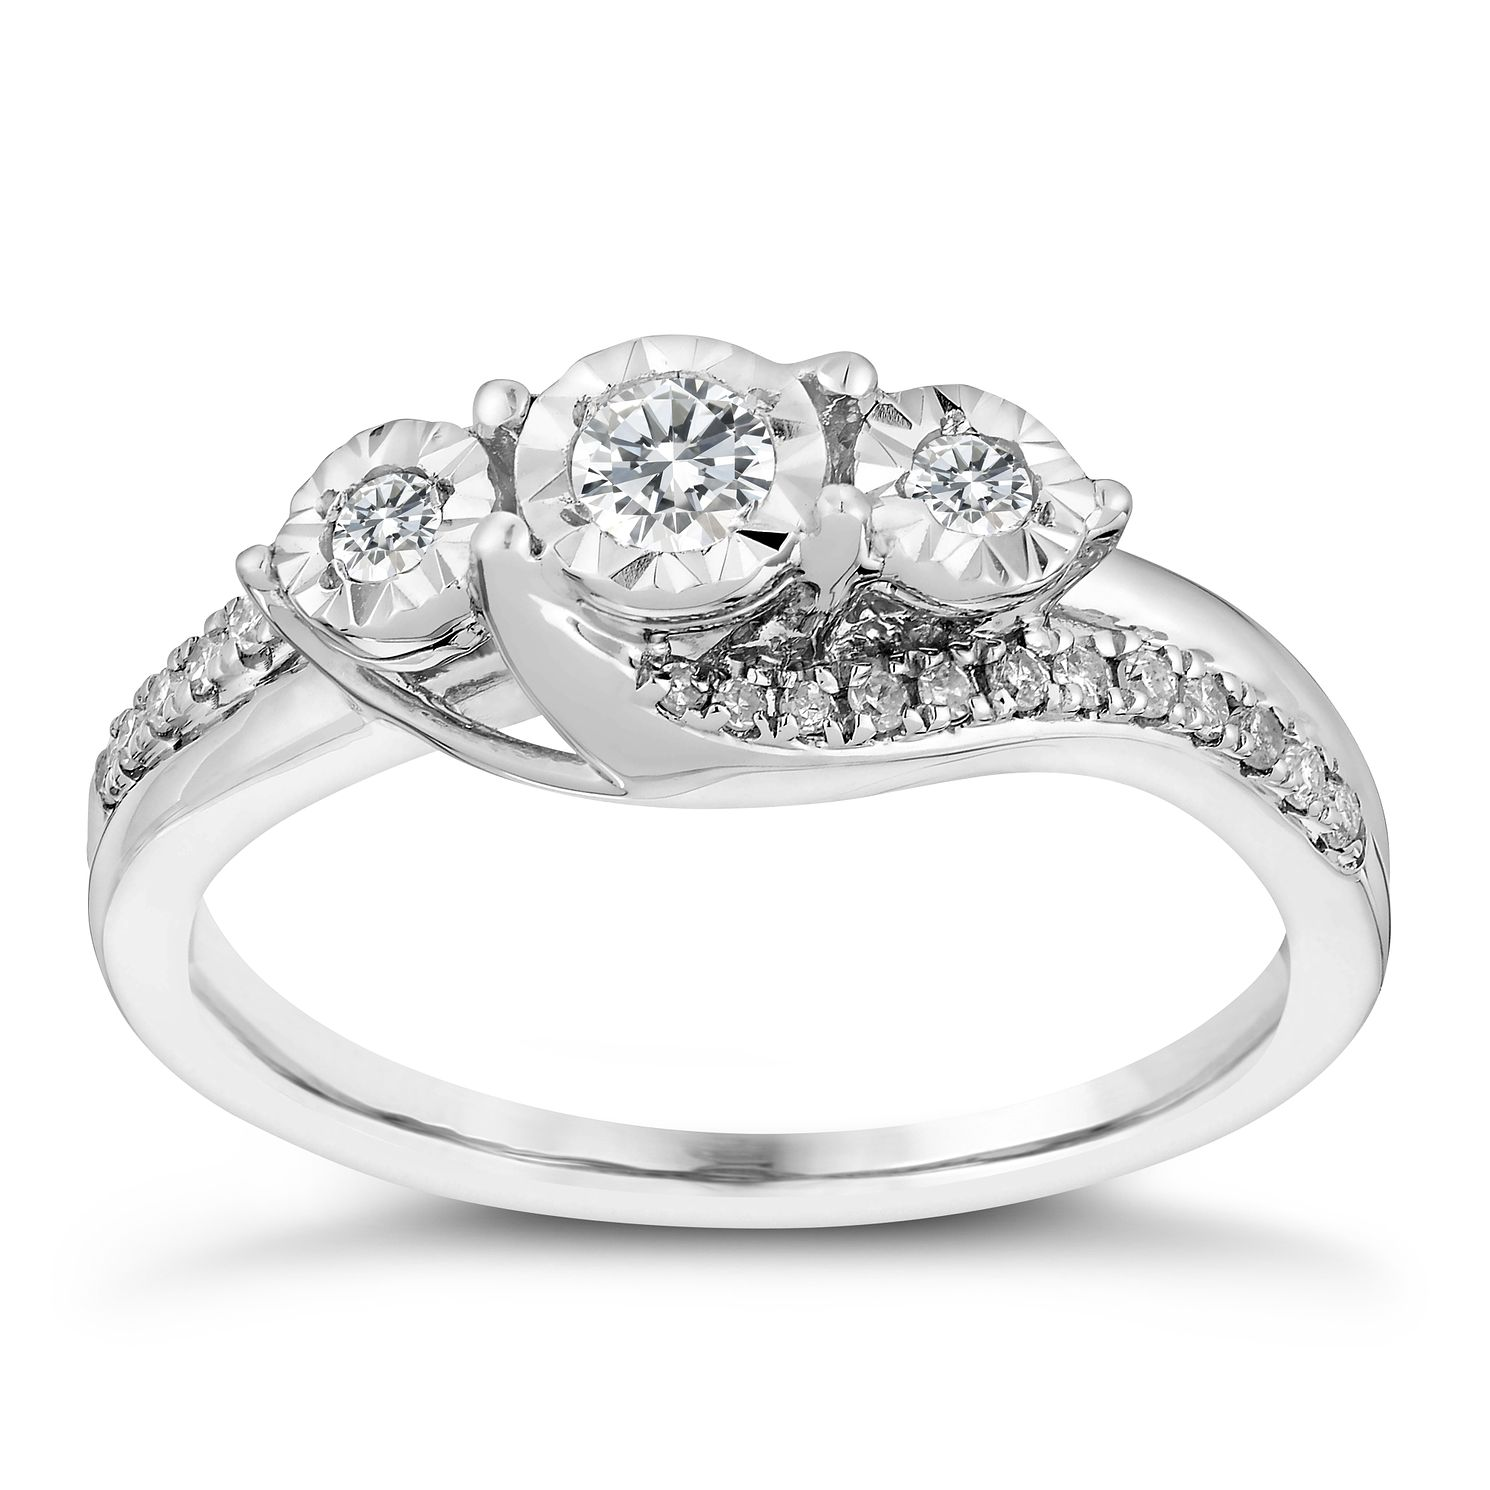 9ct White Gold 1/4ct Illusion Set Diamond Ring - Product number 3107094